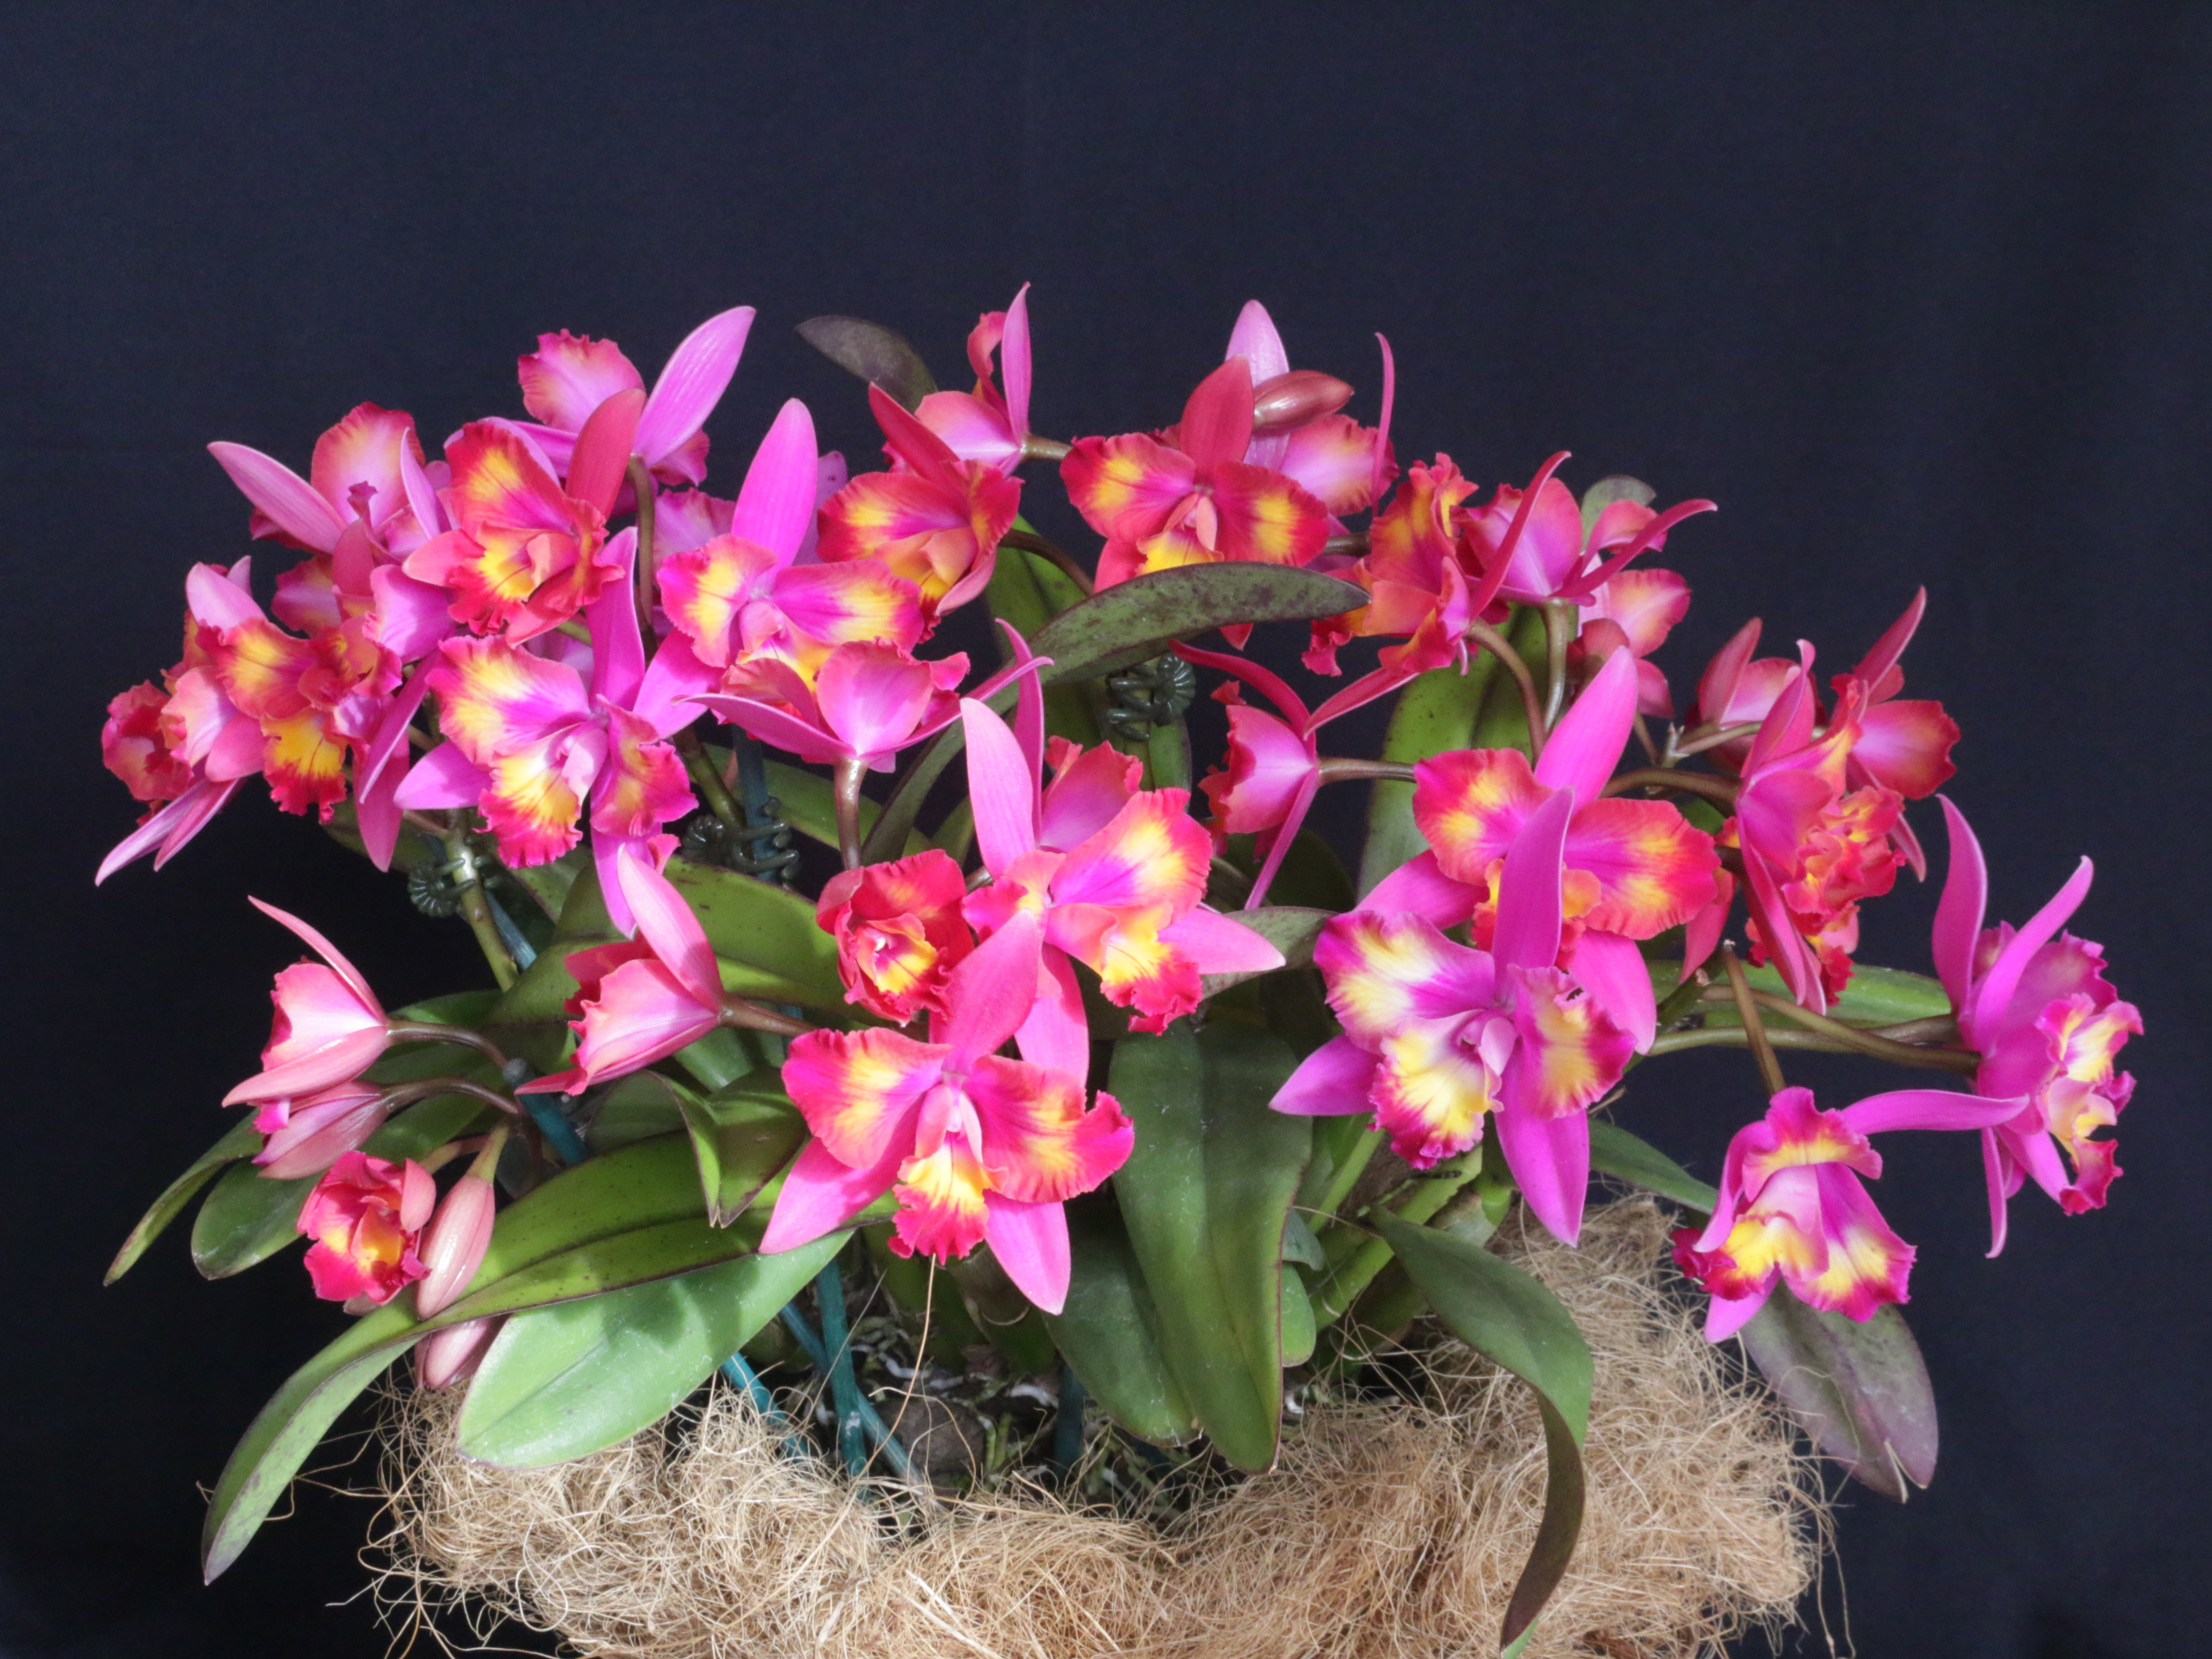 2016-044 C. Hawaiian Splash 'Lea' CCC 84.71 Owner L Teope Photo C Hubbert OCNZ